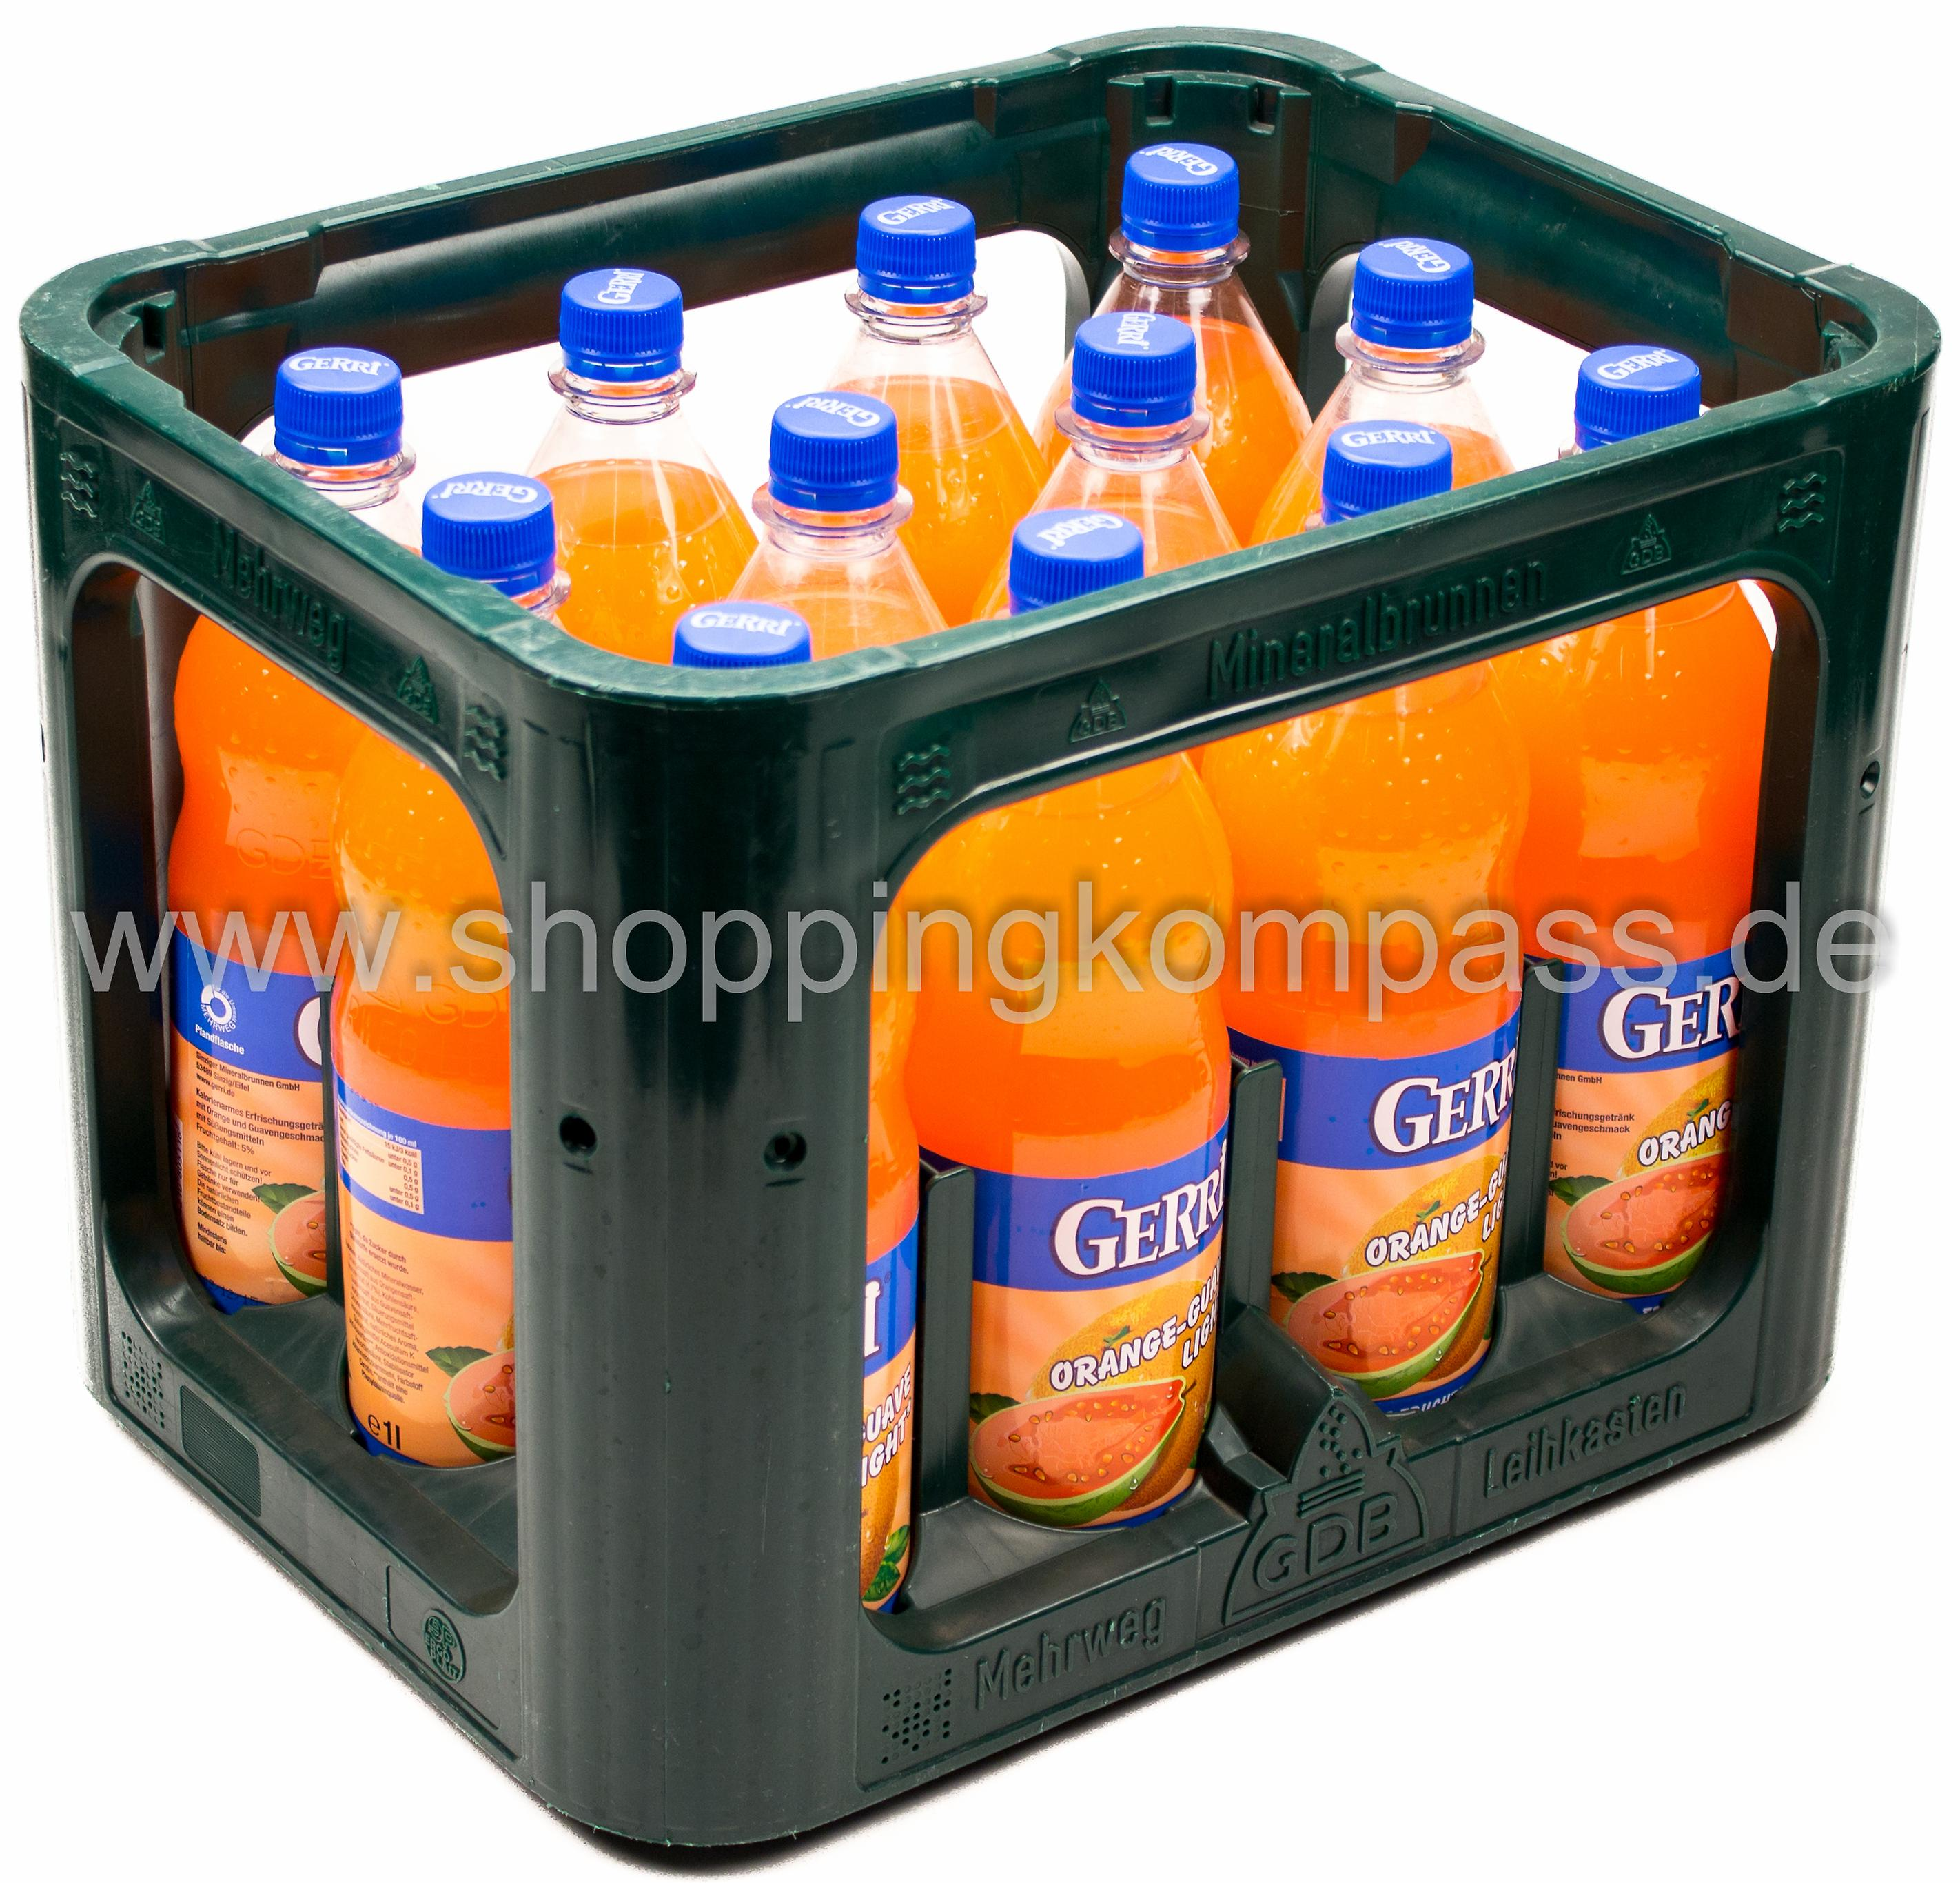 Gerri Orange Guave Light Kasten 12 x 1 l PET Mehrweg